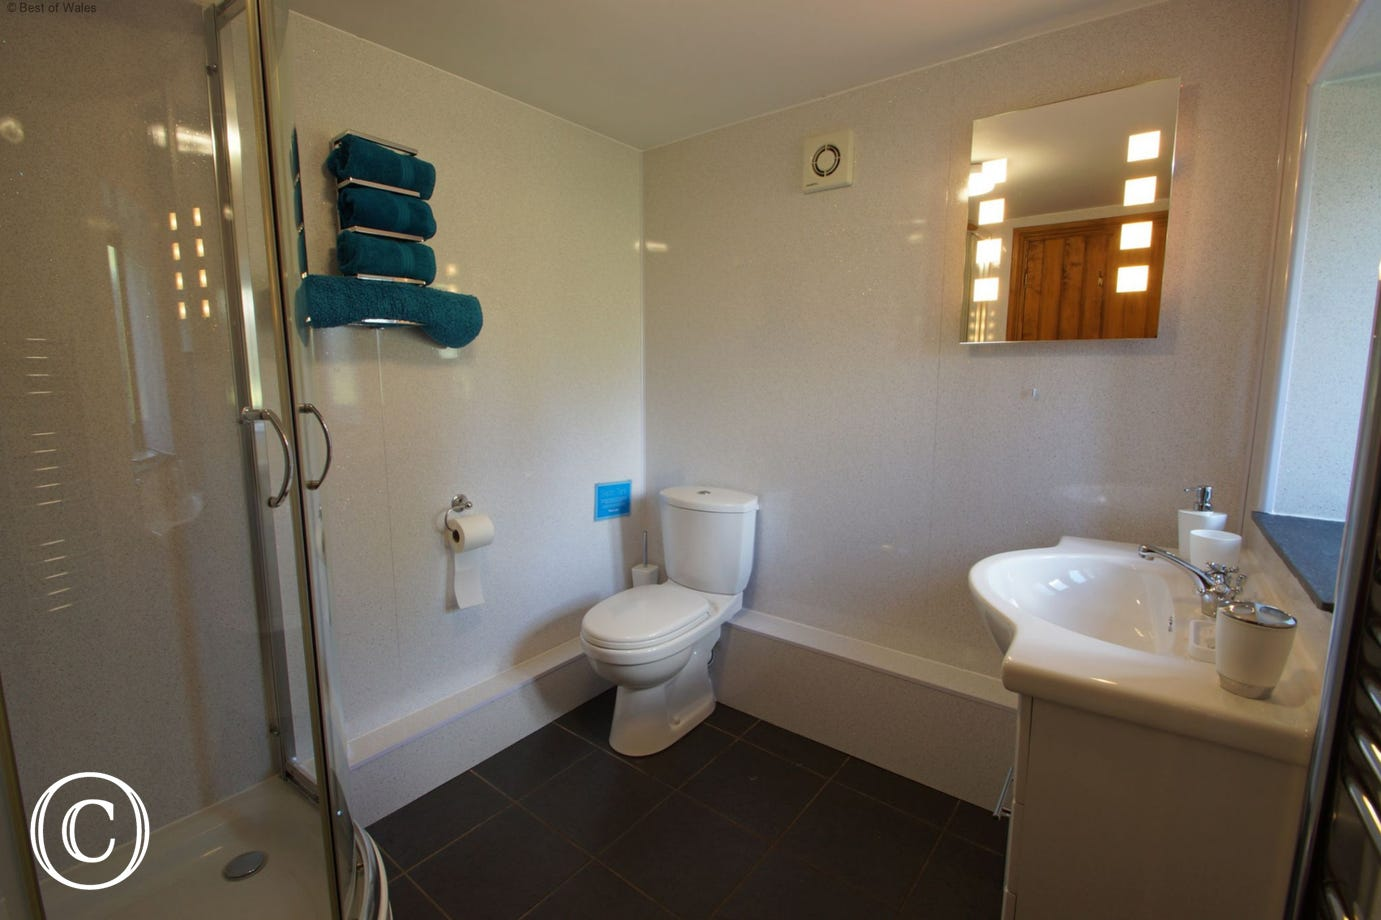 Shower room includes vanity sink unit, shower, toilet and towel rail.